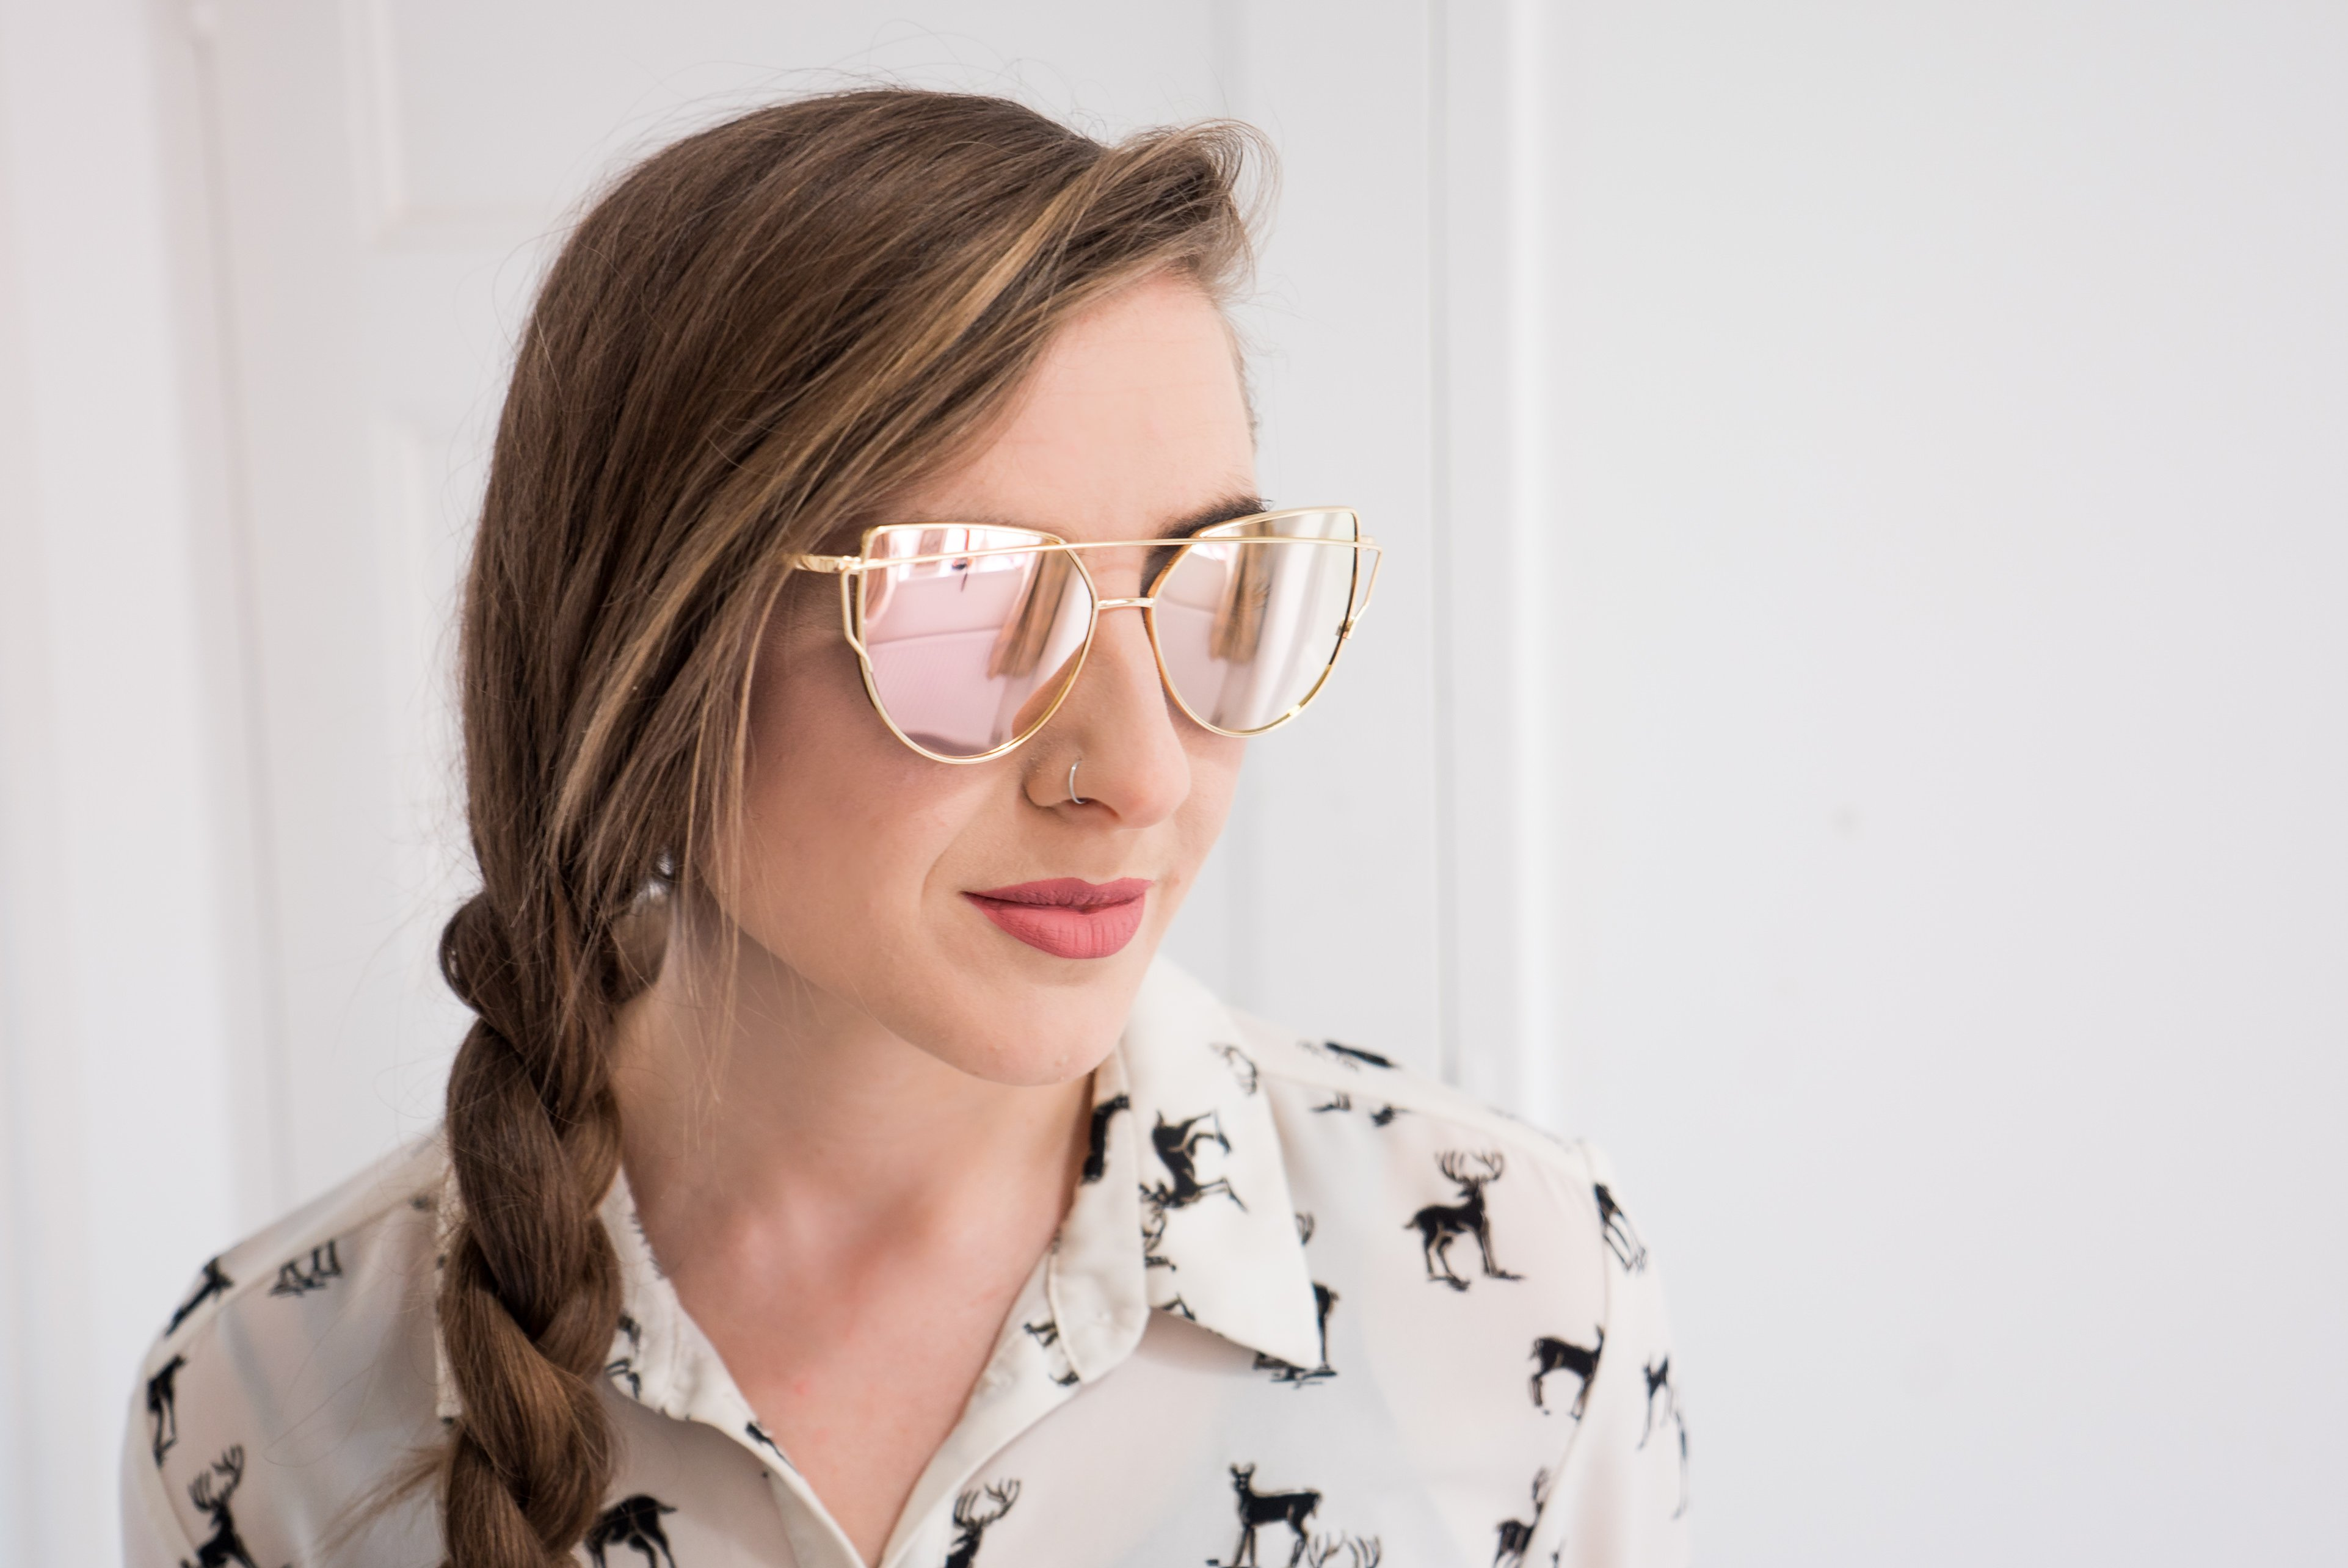 Ebay Deals - Rose Gold Mirrored Sunglasses - £1.80